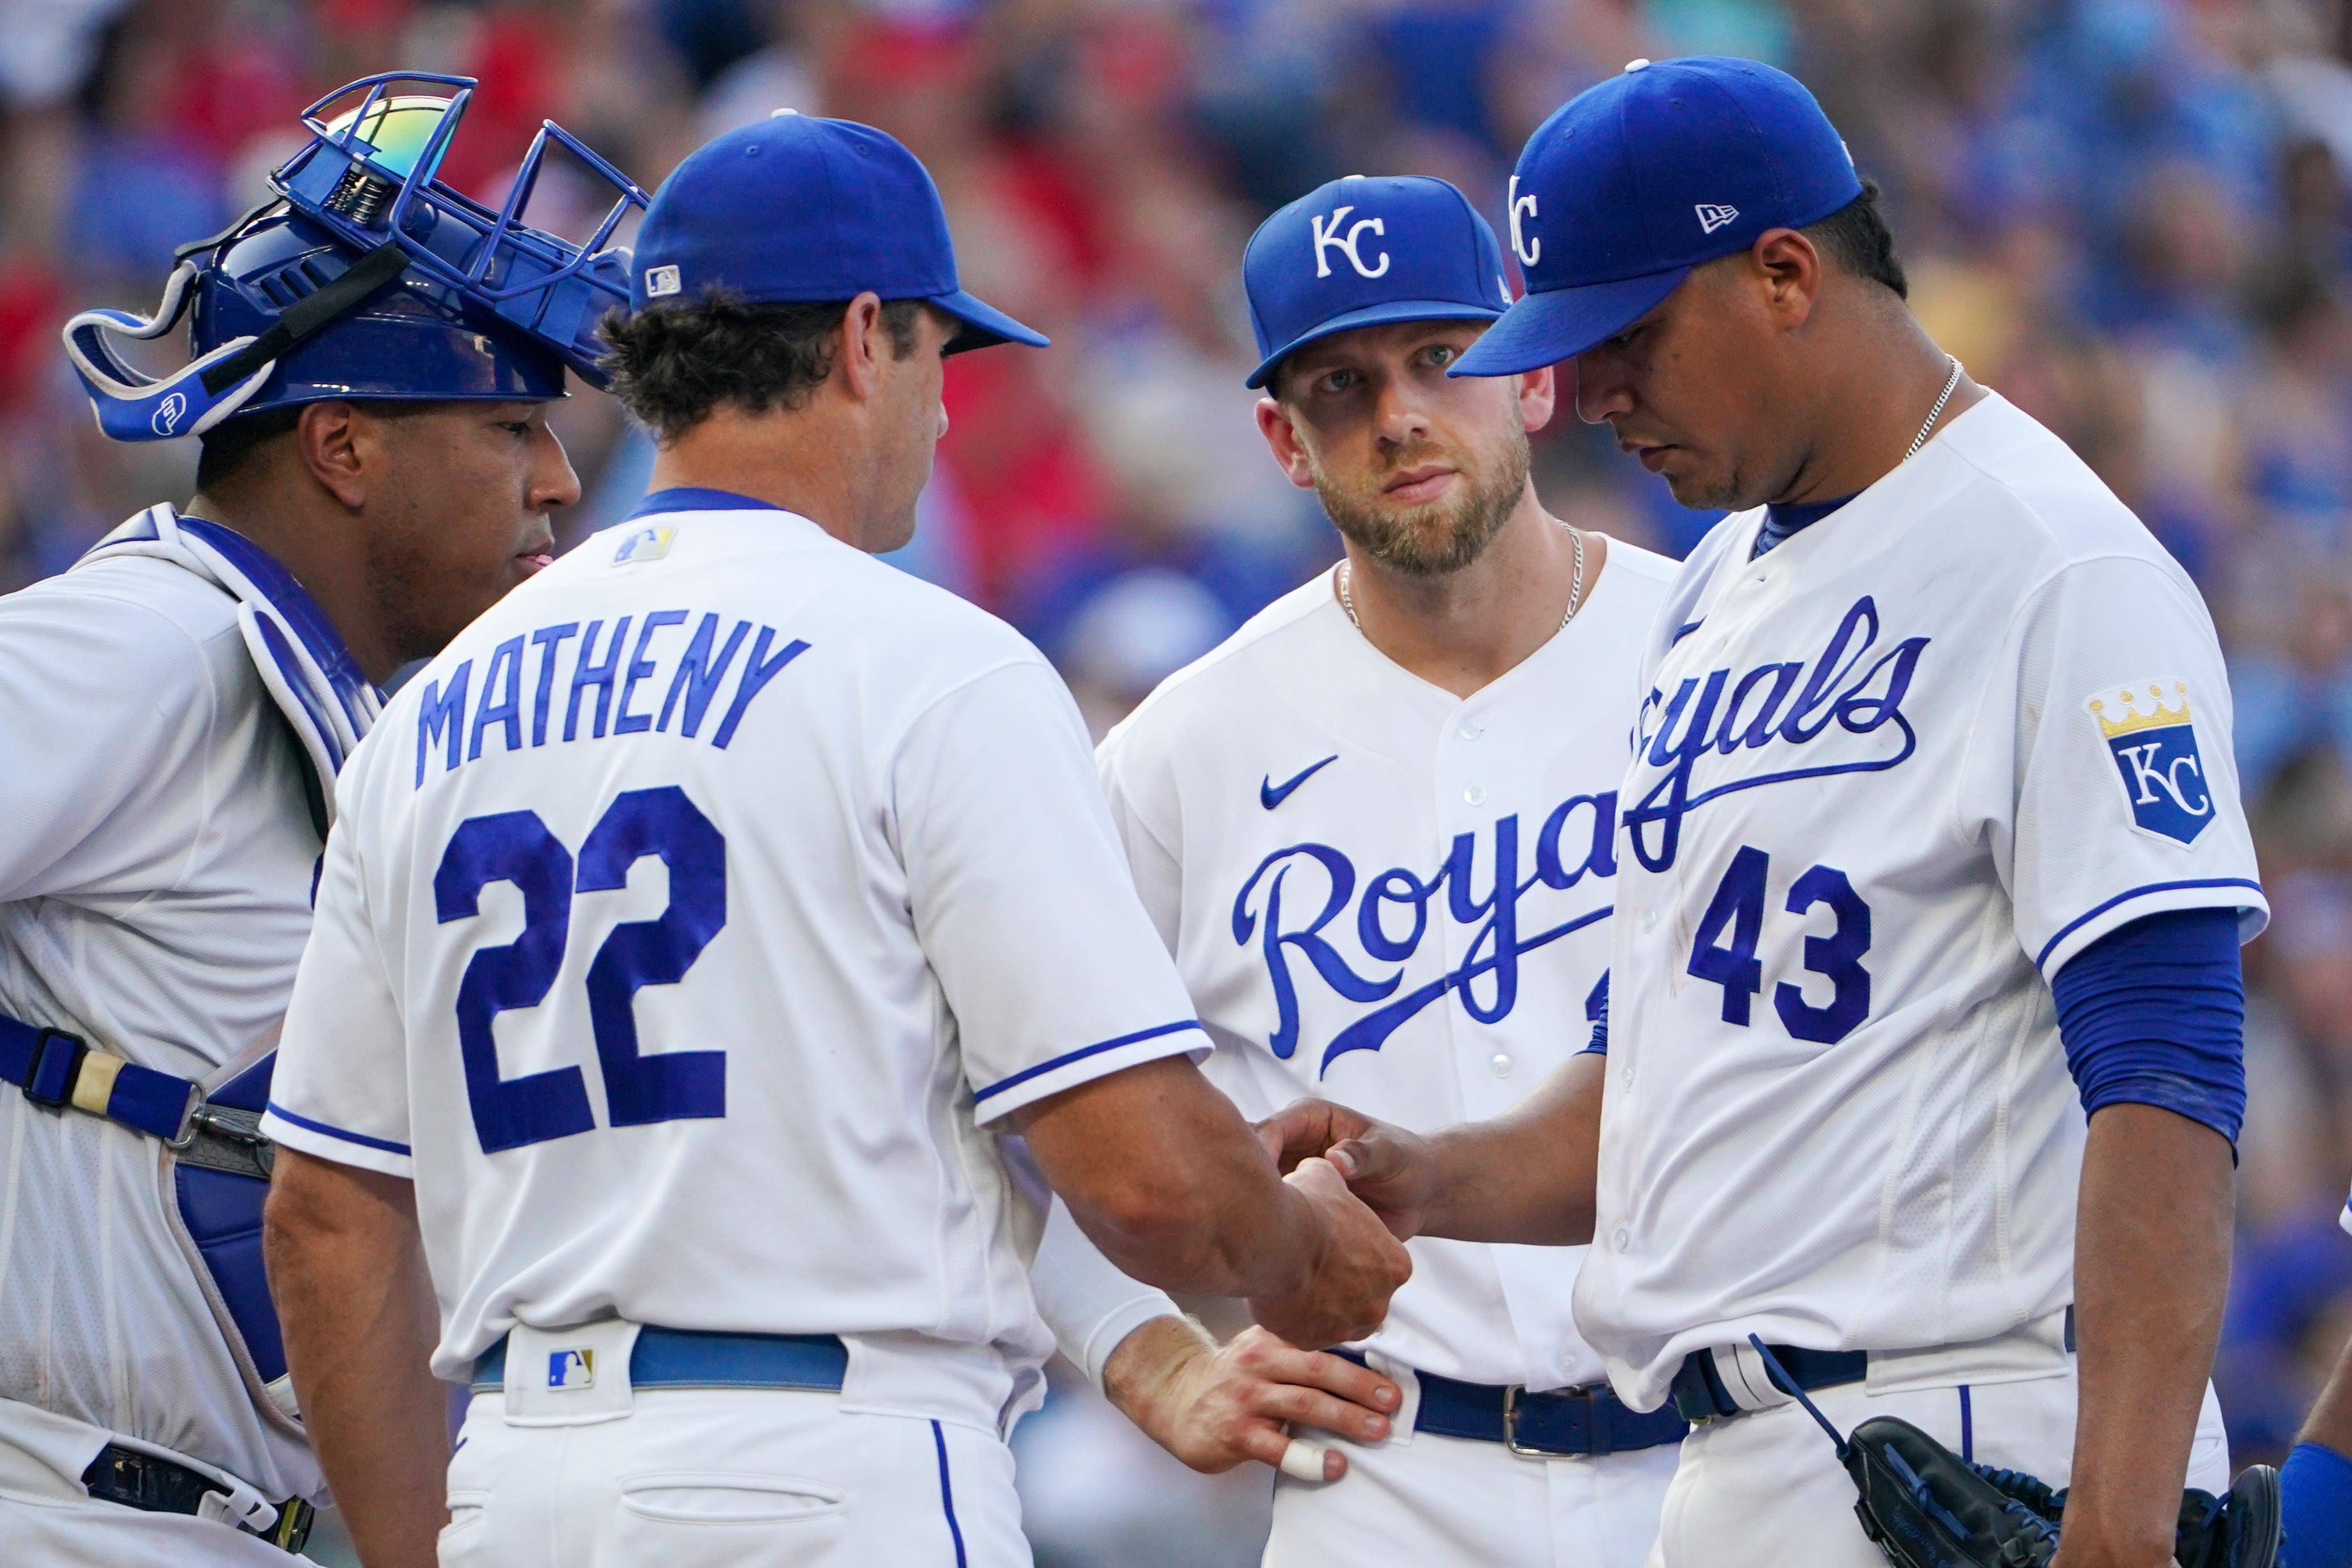 Kansas City Royals manager Mike Matheny (22) comes to the mound to replace starting pitcher Carlos Hernandez (43) in the fourth inning against the Detroit Tigers at Kauffman Stadium.